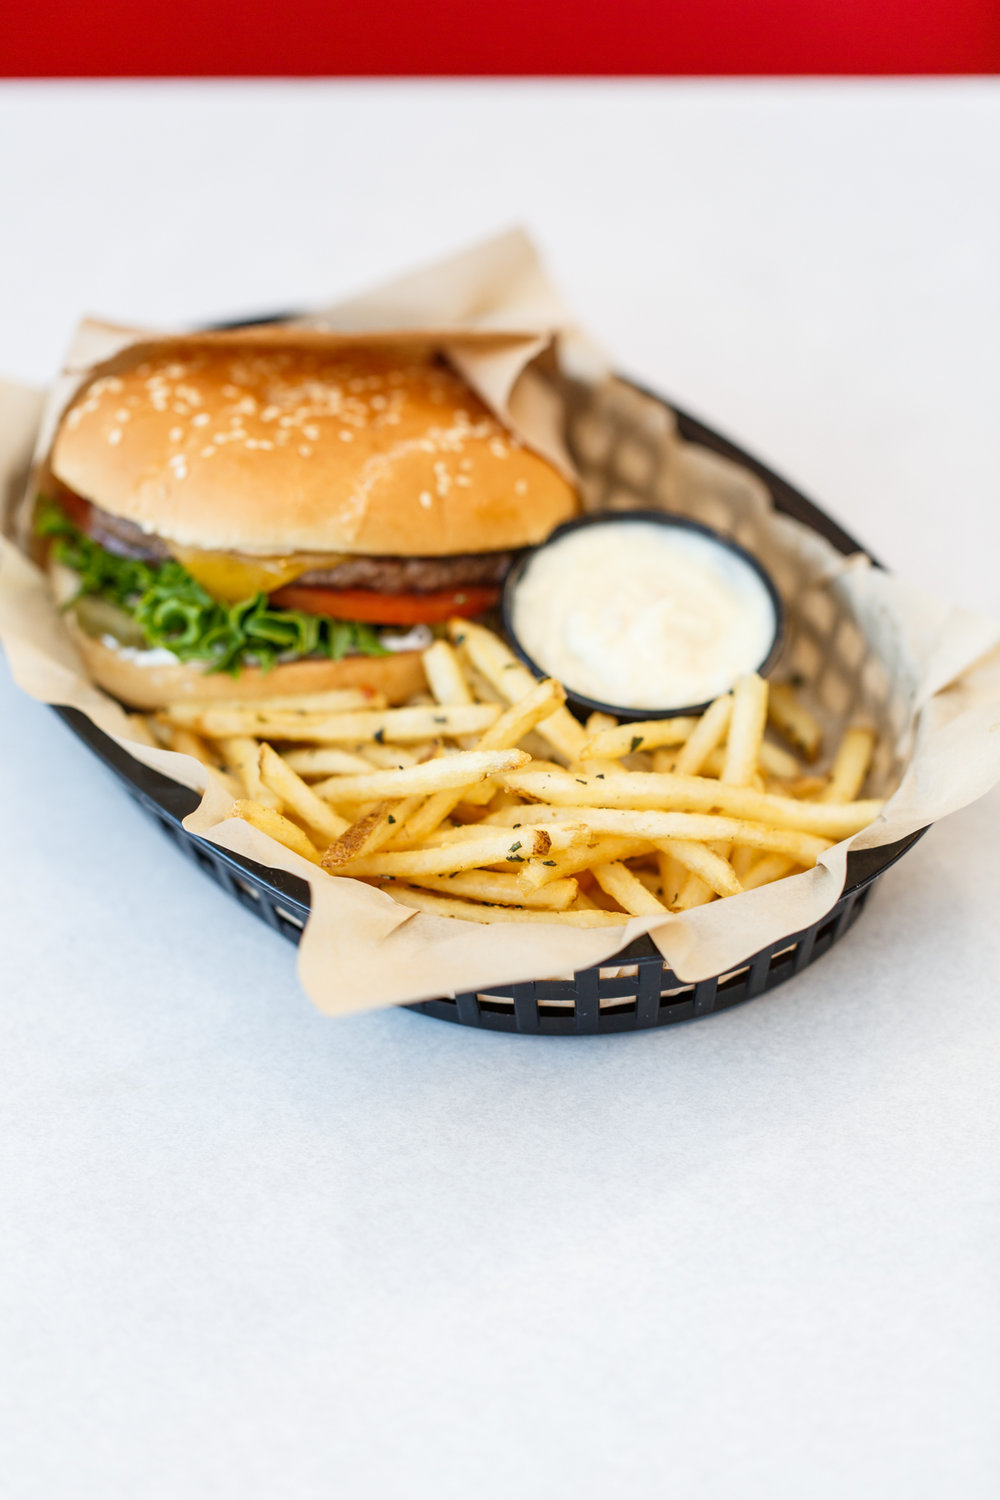 Burgerville_Spring 2018_Fries + Shake_Andrea Lonas Photography_prelim-008.jpg